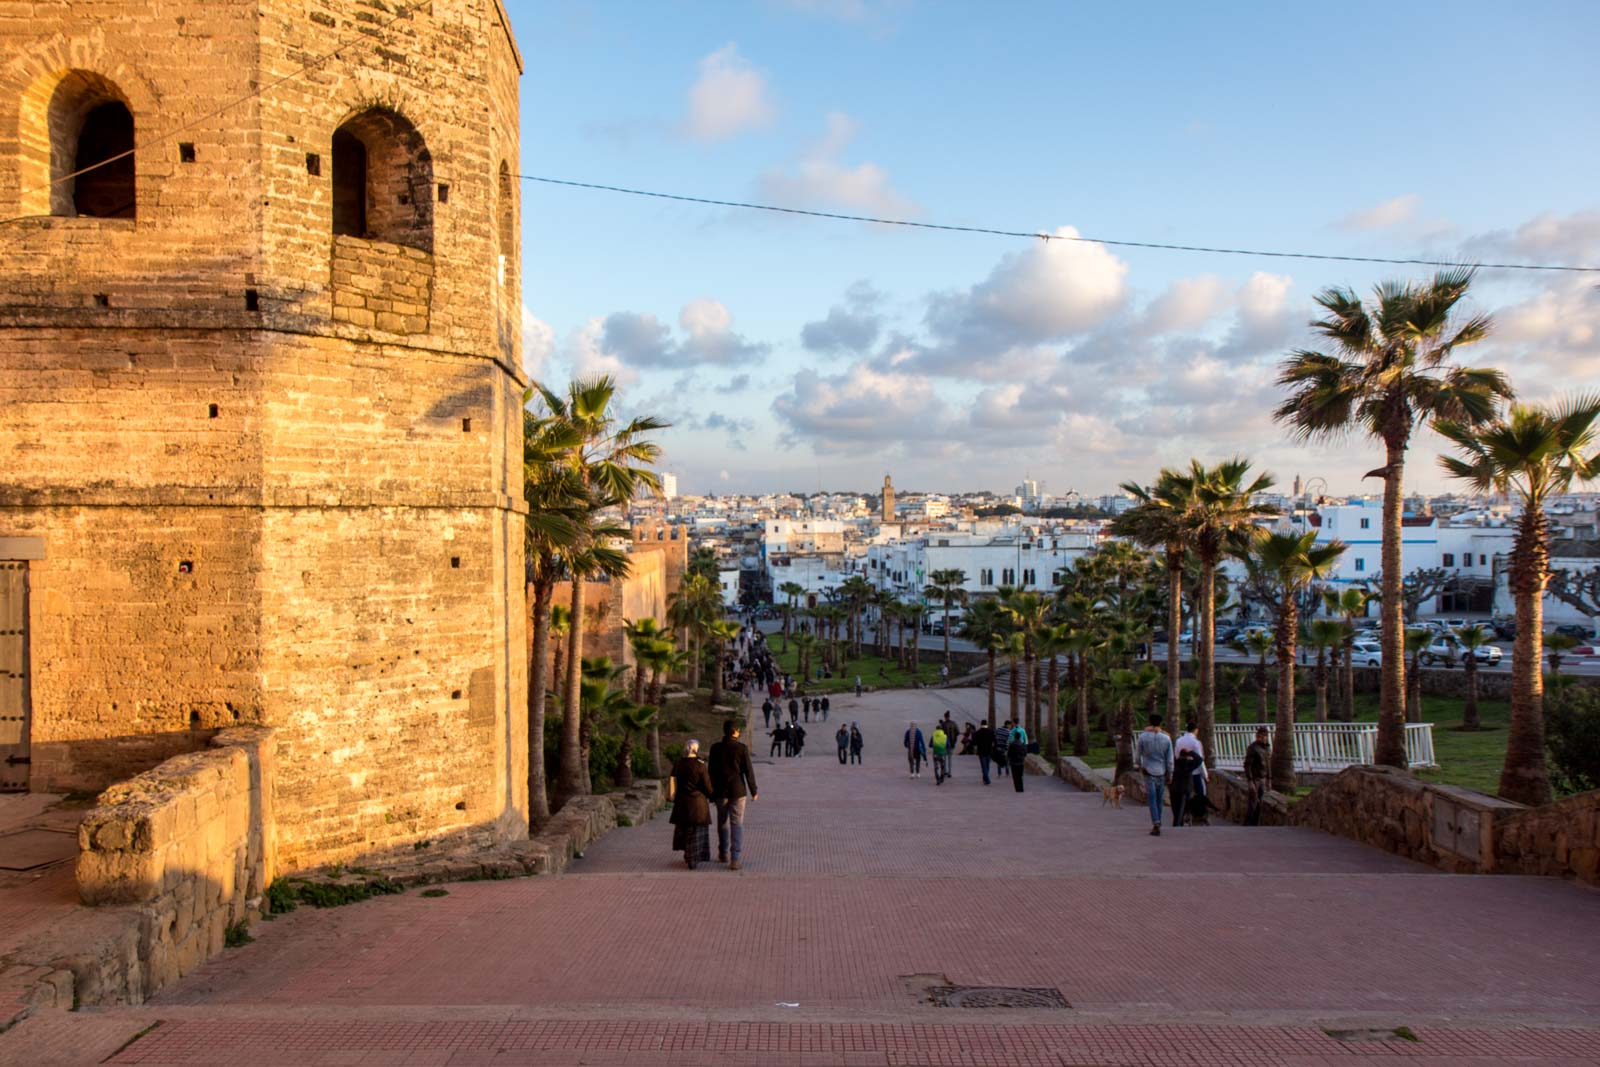 Things to see in Rabat, Morocco